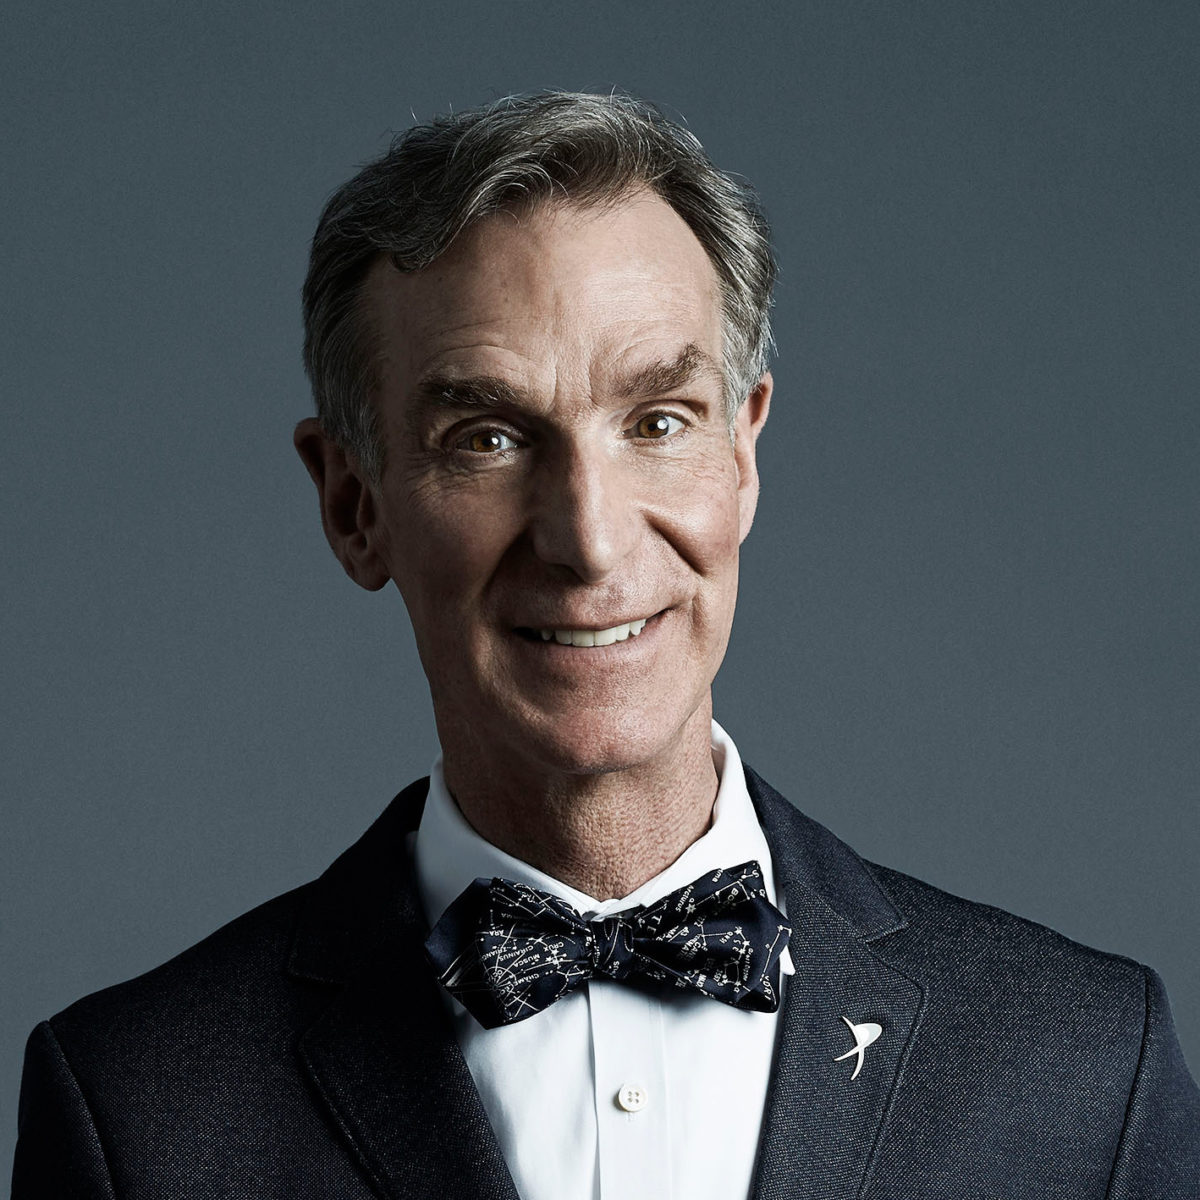 20190611 bill nye profile cropped